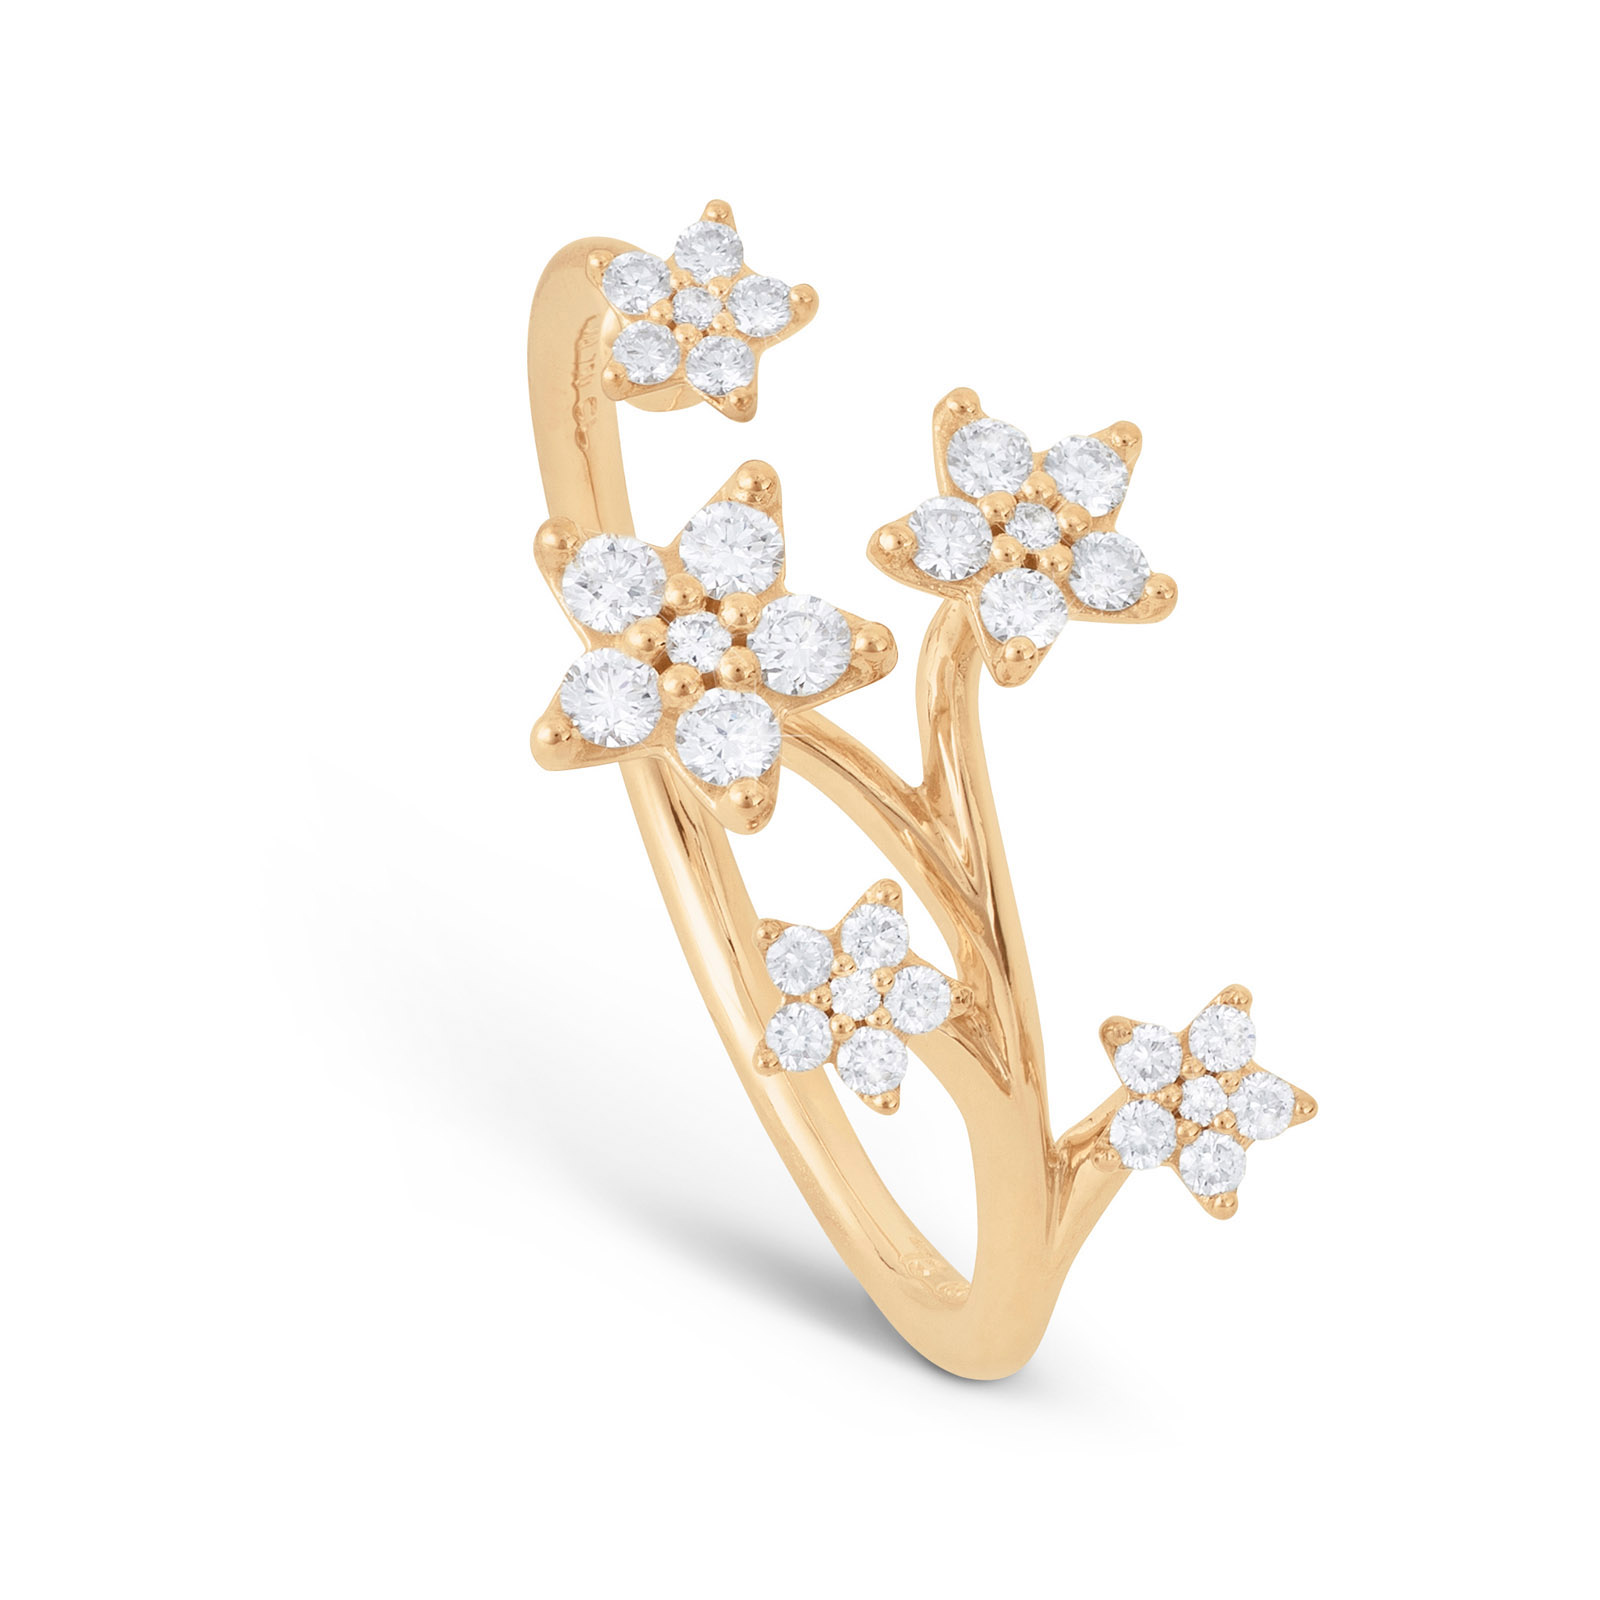 Mestergull Shooting stars ring med 30 diamanter totalt 0,27 ct. TwVs LYNGGAARD Shooting Stars Ring